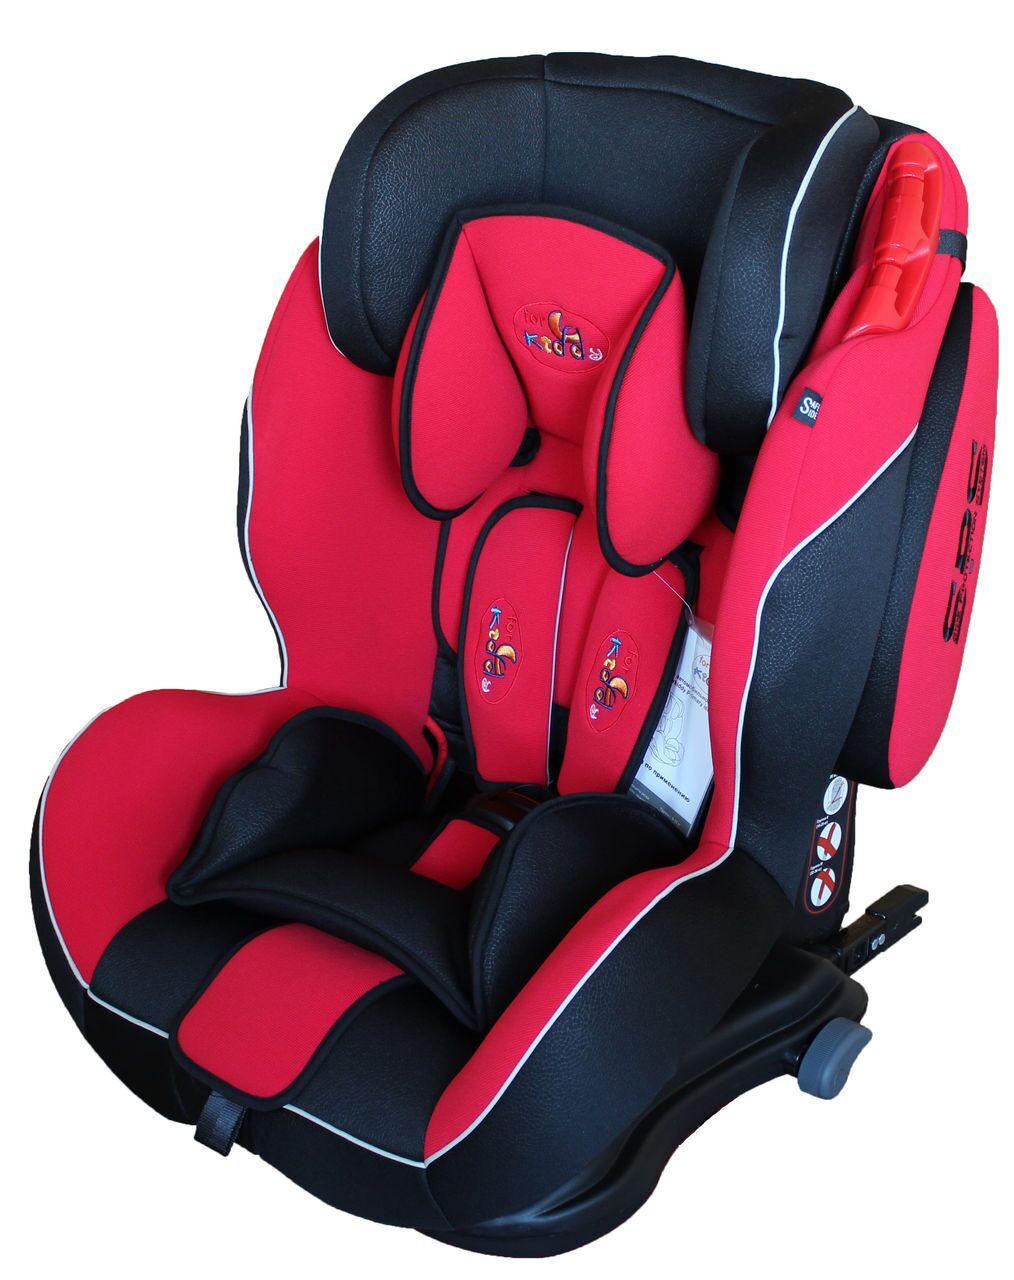 http://for-kiddy.ru/d/942522/d/ForKiddy_Primary_IsoFix_Red_%D0%B1%D0%BE%D0%BB.jpg